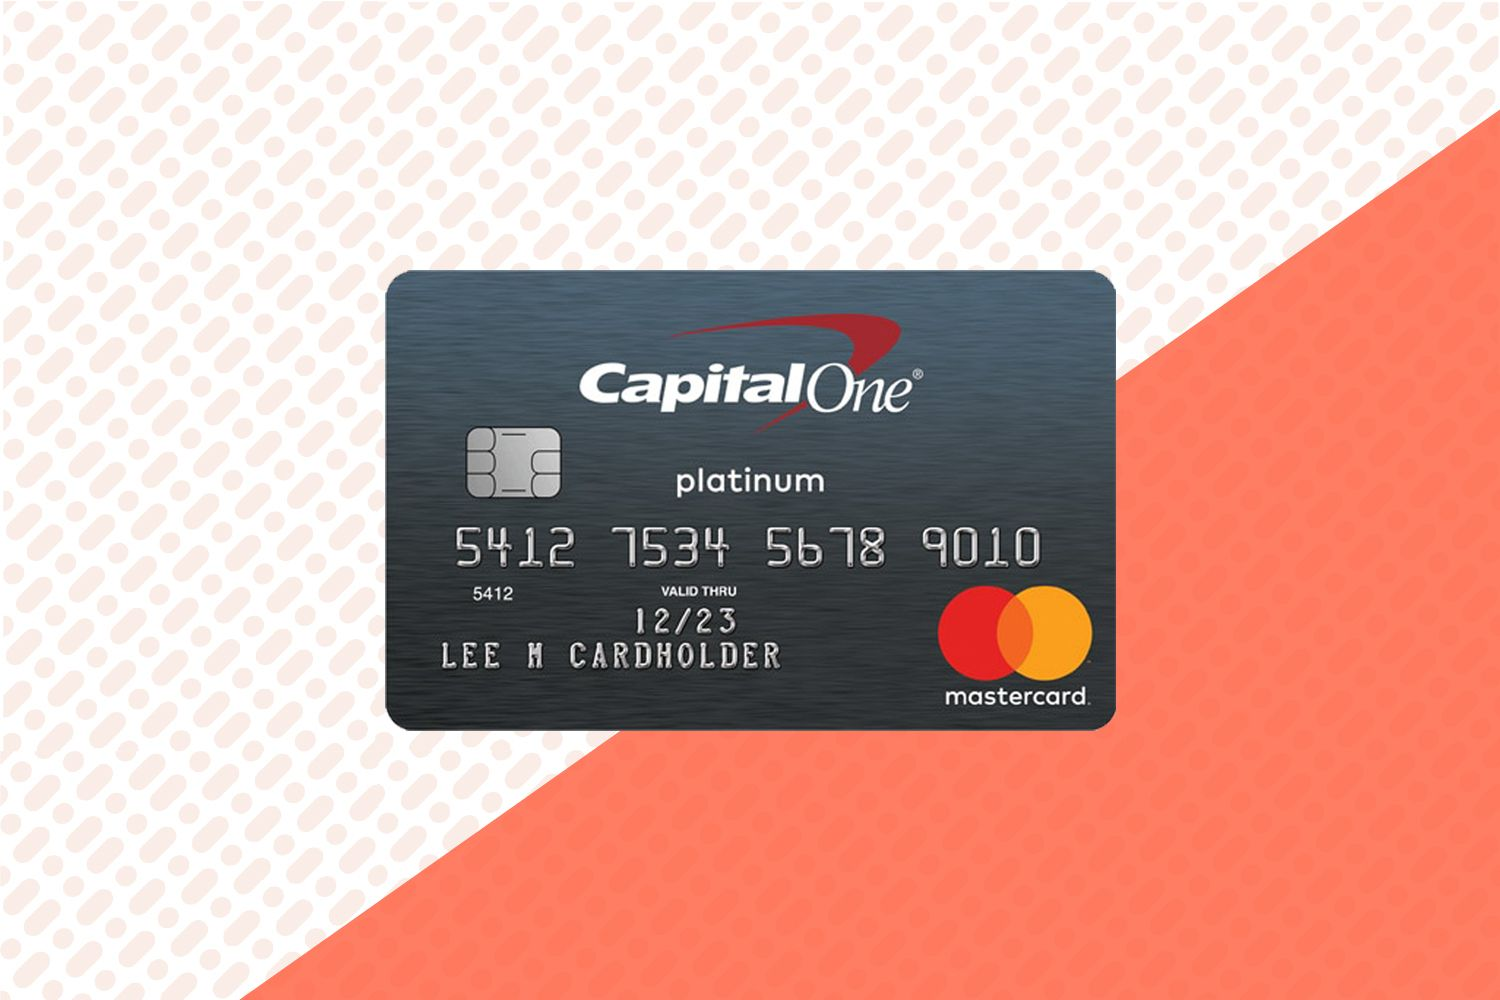 capital one credit card bill pay address